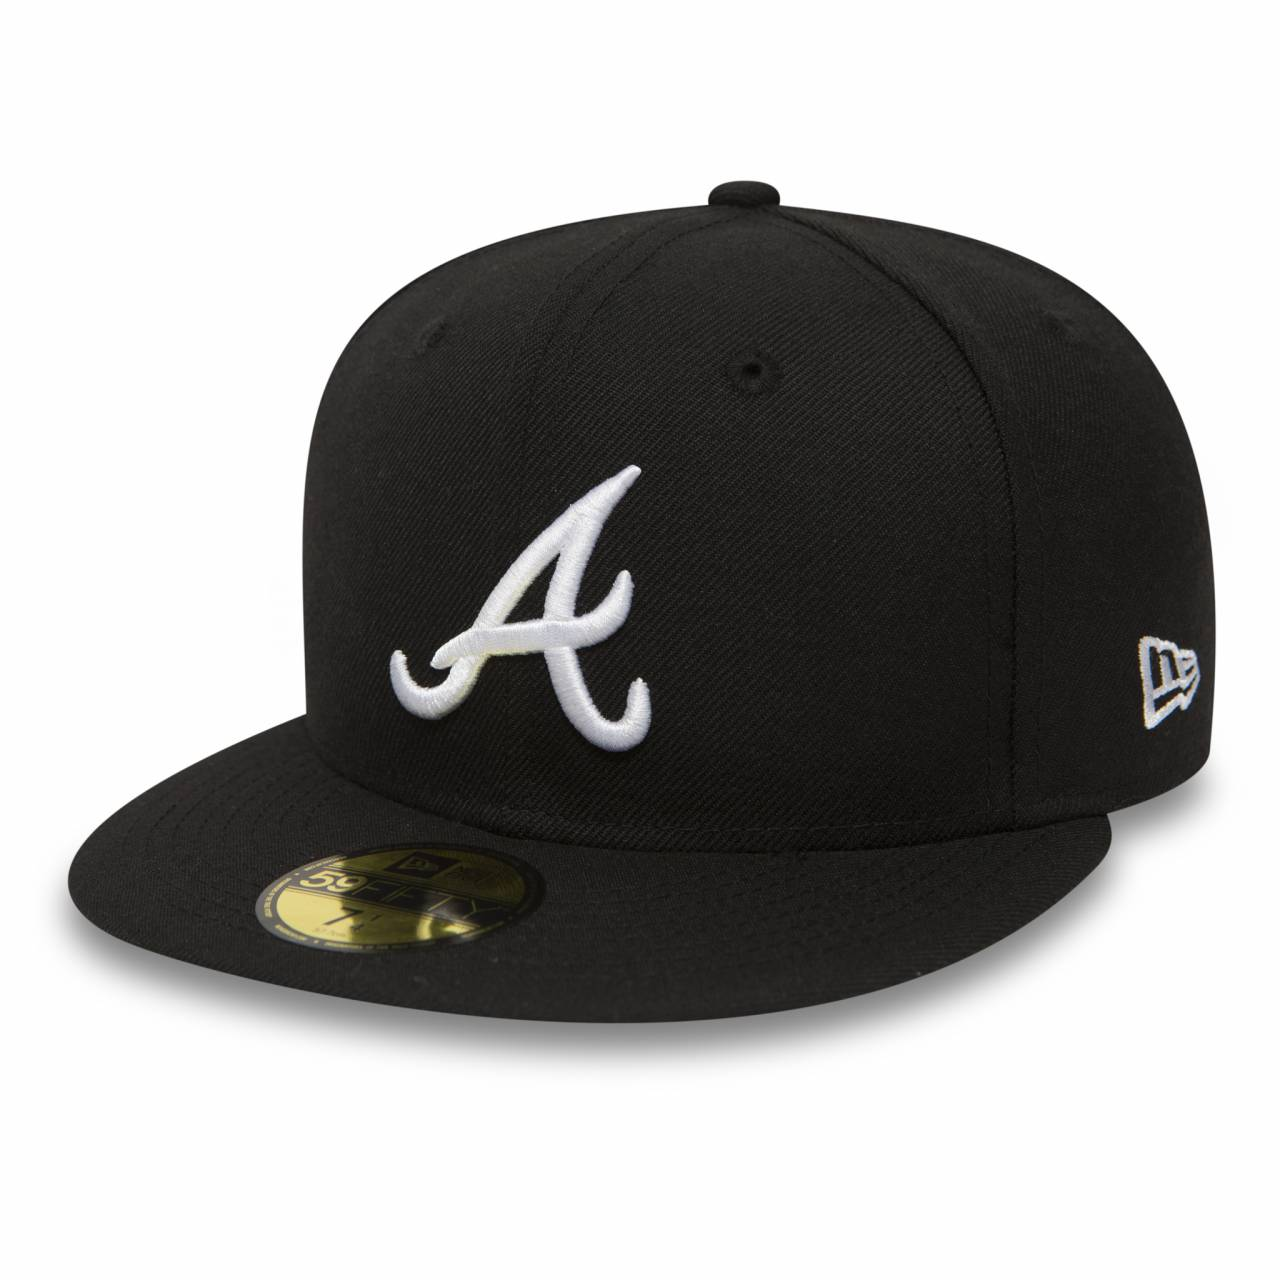 10047487 59FIFTY ATLANTA BRAVES BLACK/WHITE FITTED CAP